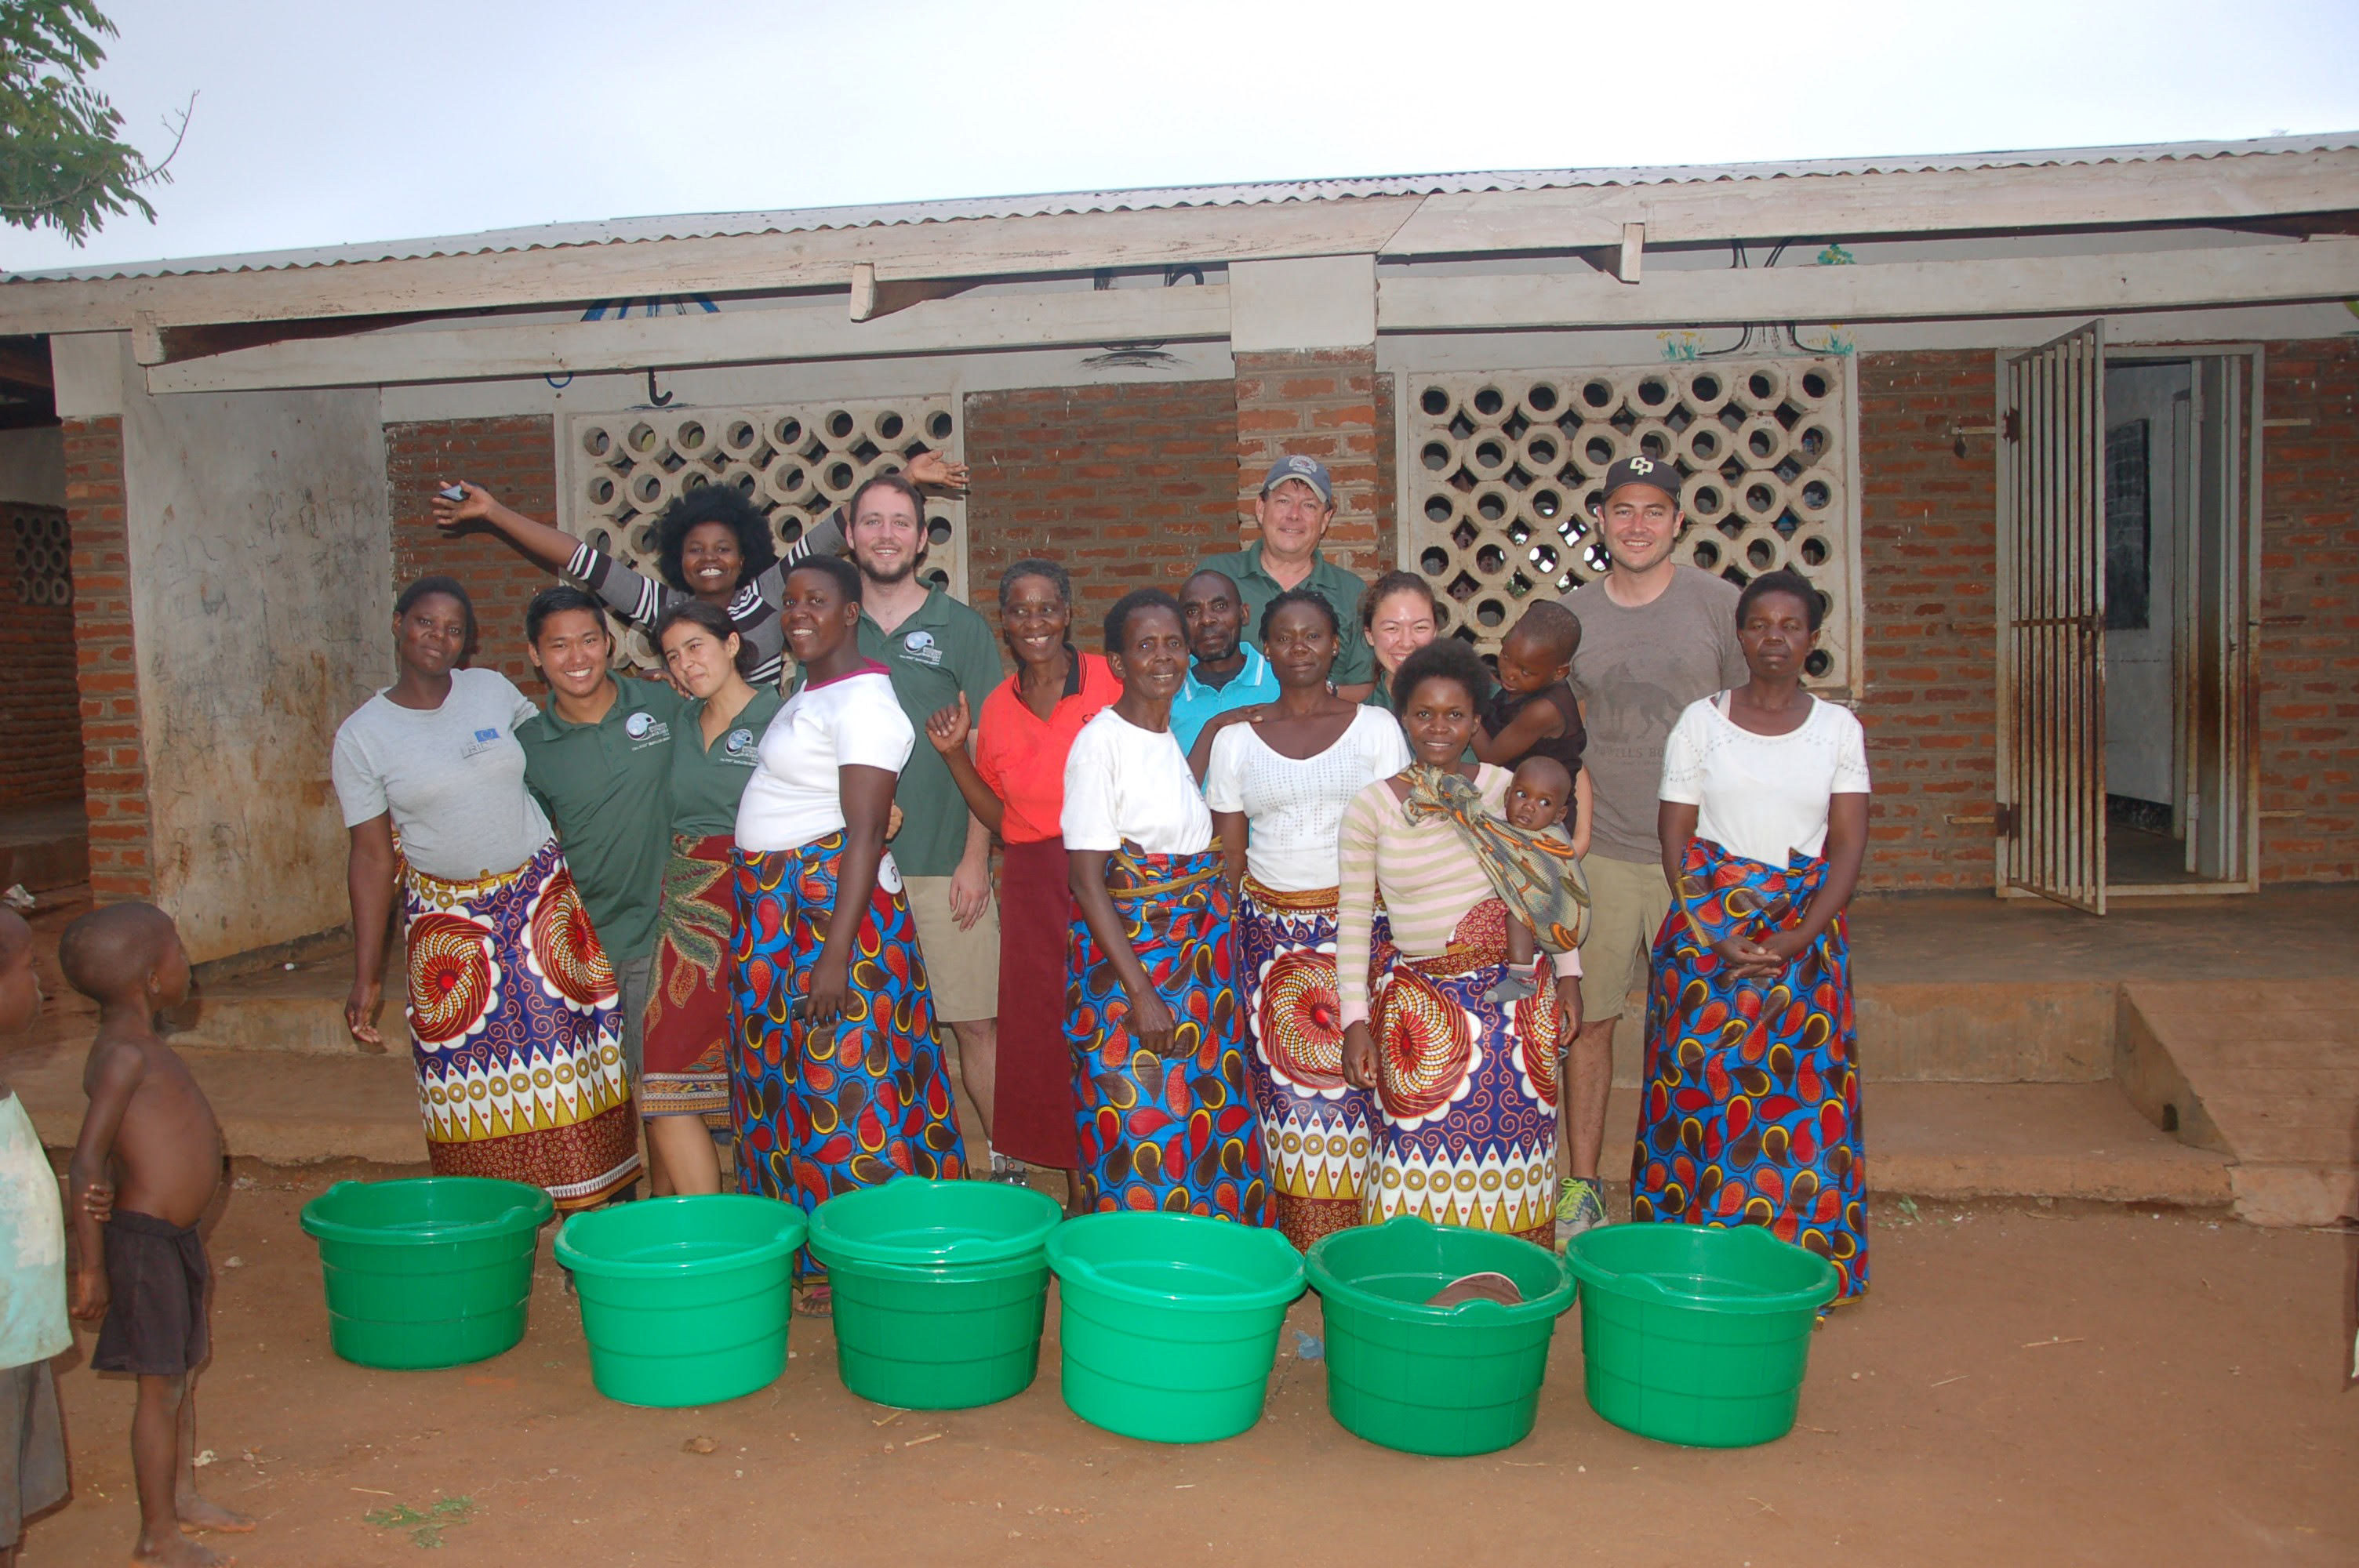 Brian Pompeii with students in Malawi